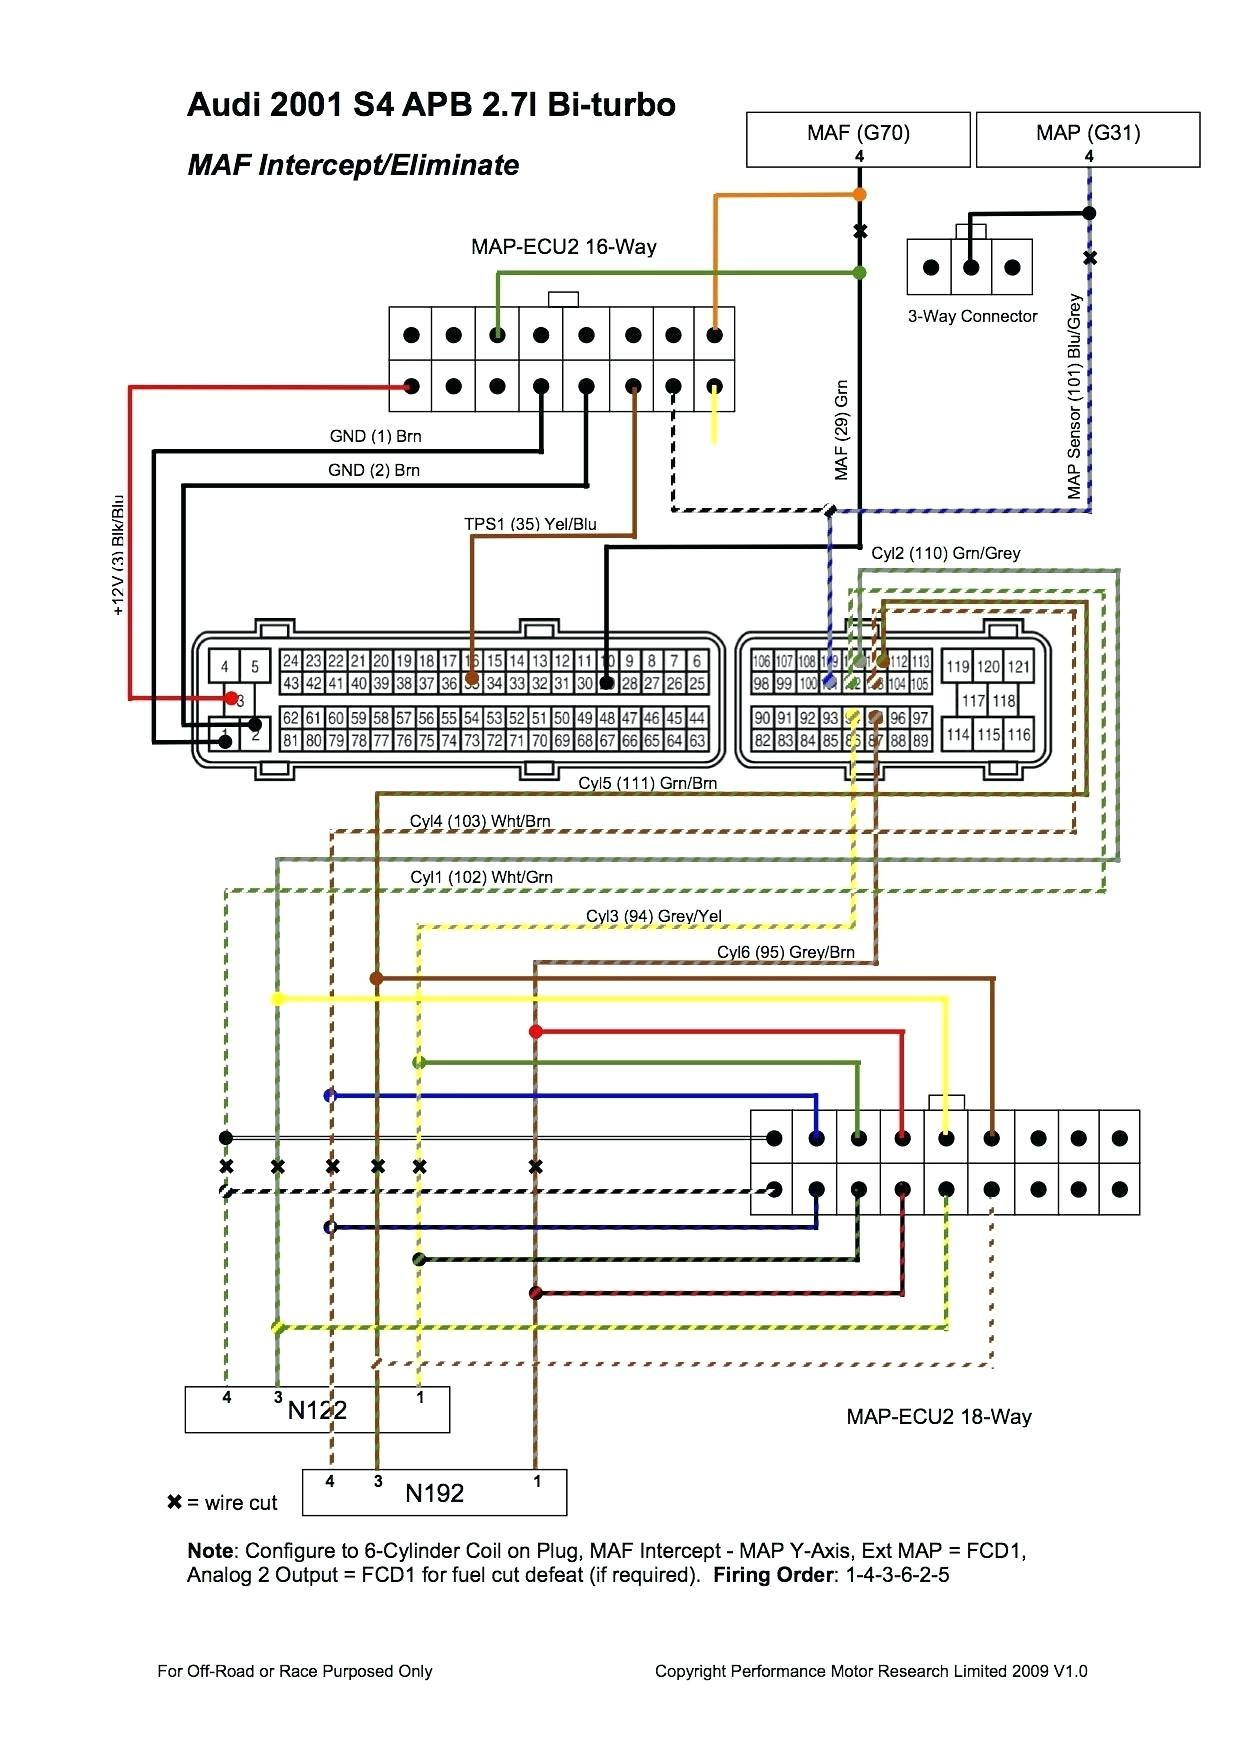 78 Pontiac Grand Prix Wiring Diagram Blog About Diagrams Car Stereo 2006 Radio Unique Convertible